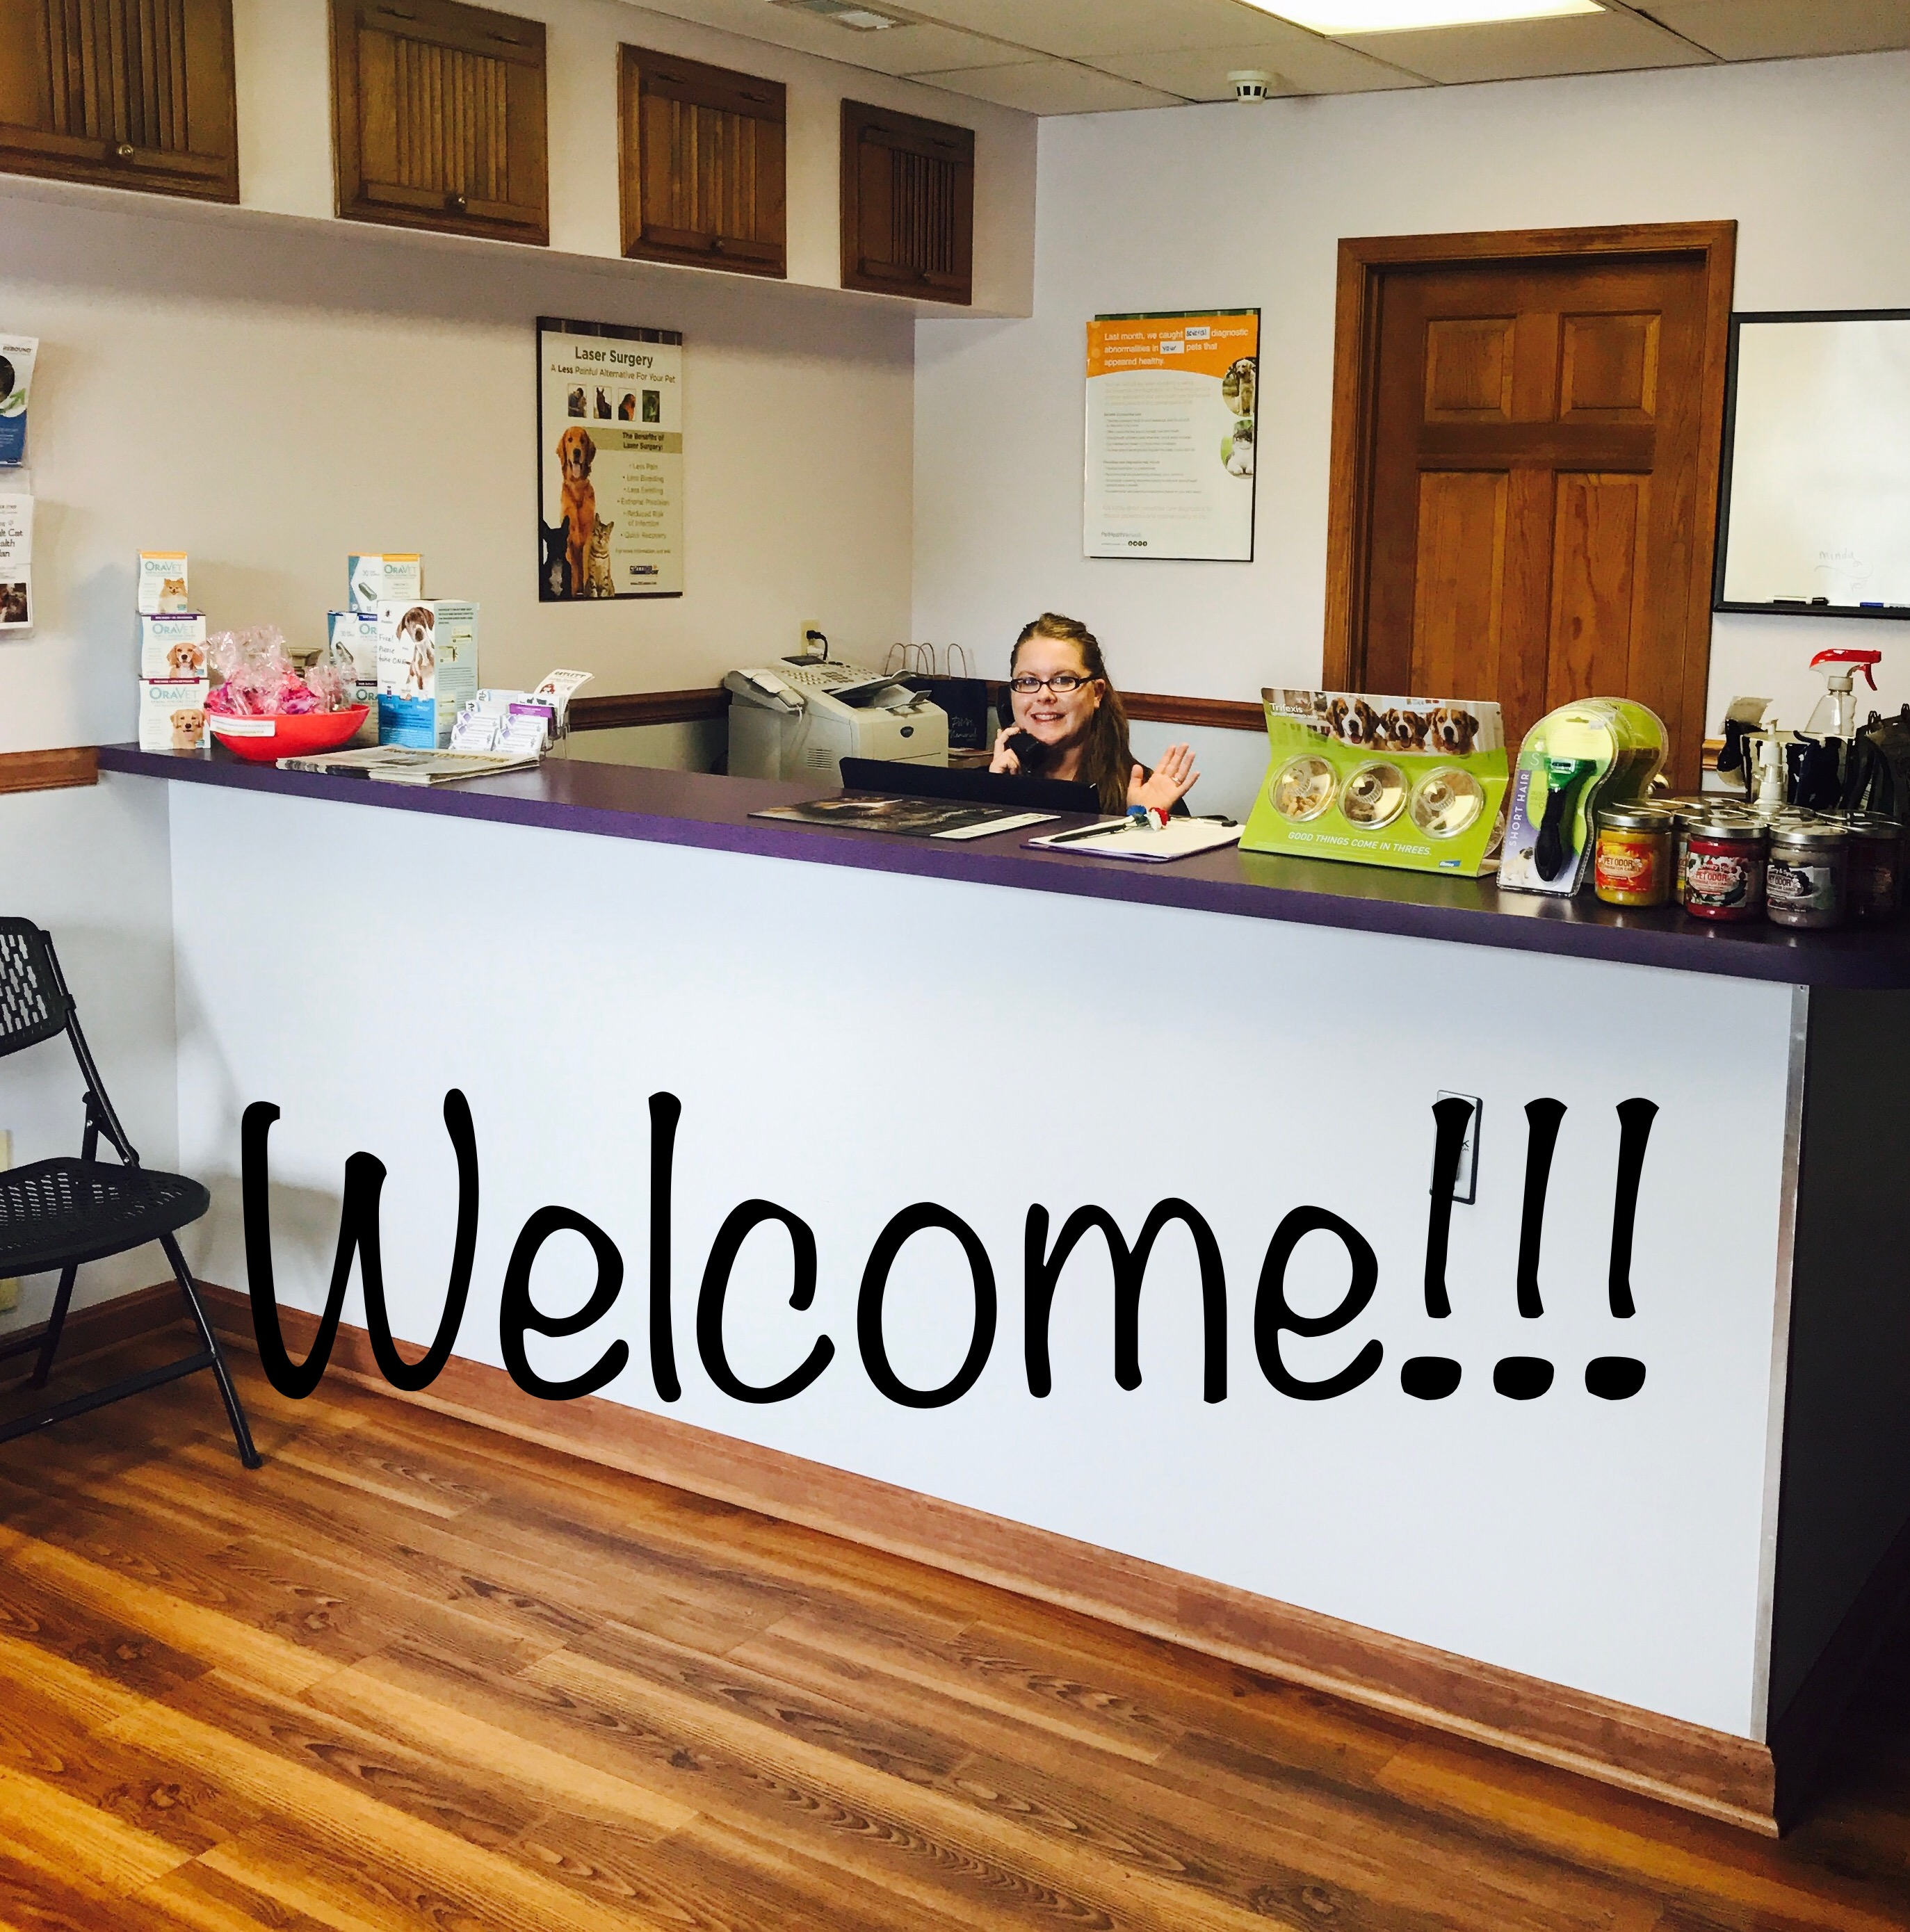 2017 06 search price list veterinary clinic - Welcome To Catlett Animal Hospital